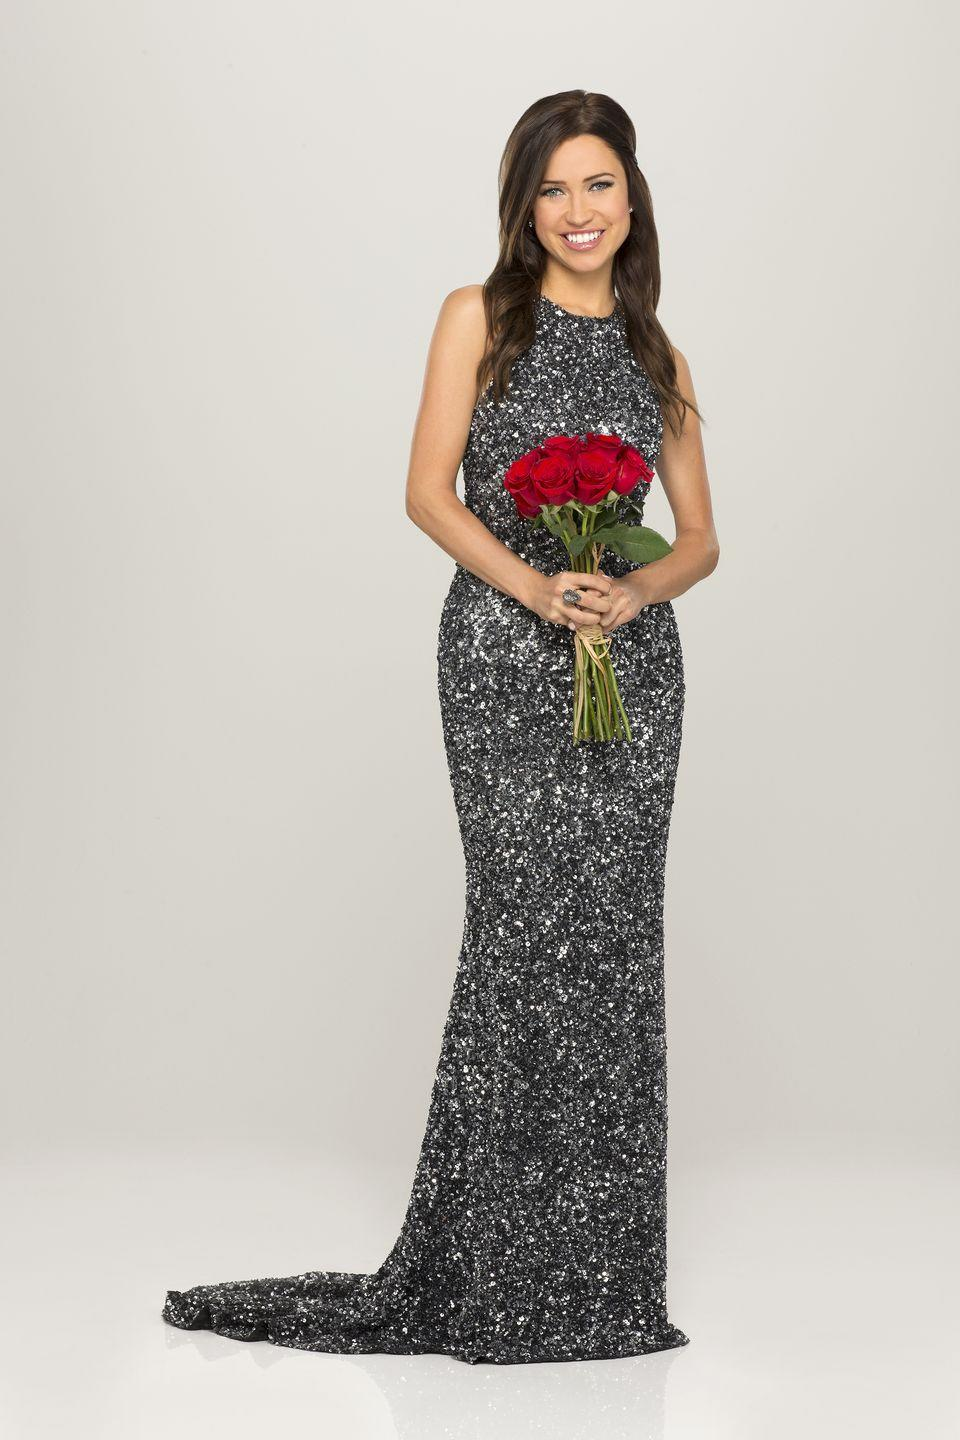 """<p>For a more glamorous look, throw on your favorite sparkly dress and grab a bouquet of red roses and you'll be transformed into the next star of <em>The Bachelorette.</em> </p><p><a class=""""link rapid-noclick-resp"""" href=""""https://www.amazon.com/Lvydec-Artificial-Flowers-Silk-Rose/dp/B07BK1GWNF?tag=syn-yahoo-20&ascsubtag=%5Bartid%7C10070.g.490%5Bsrc%7Cyahoo-us"""" rel=""""nofollow noopener"""" target=""""_blank"""" data-ylk=""""slk:SHOP ARTIFICIAL RED ROSES"""">SHOP ARTIFICIAL RED ROSES</a> </p>"""